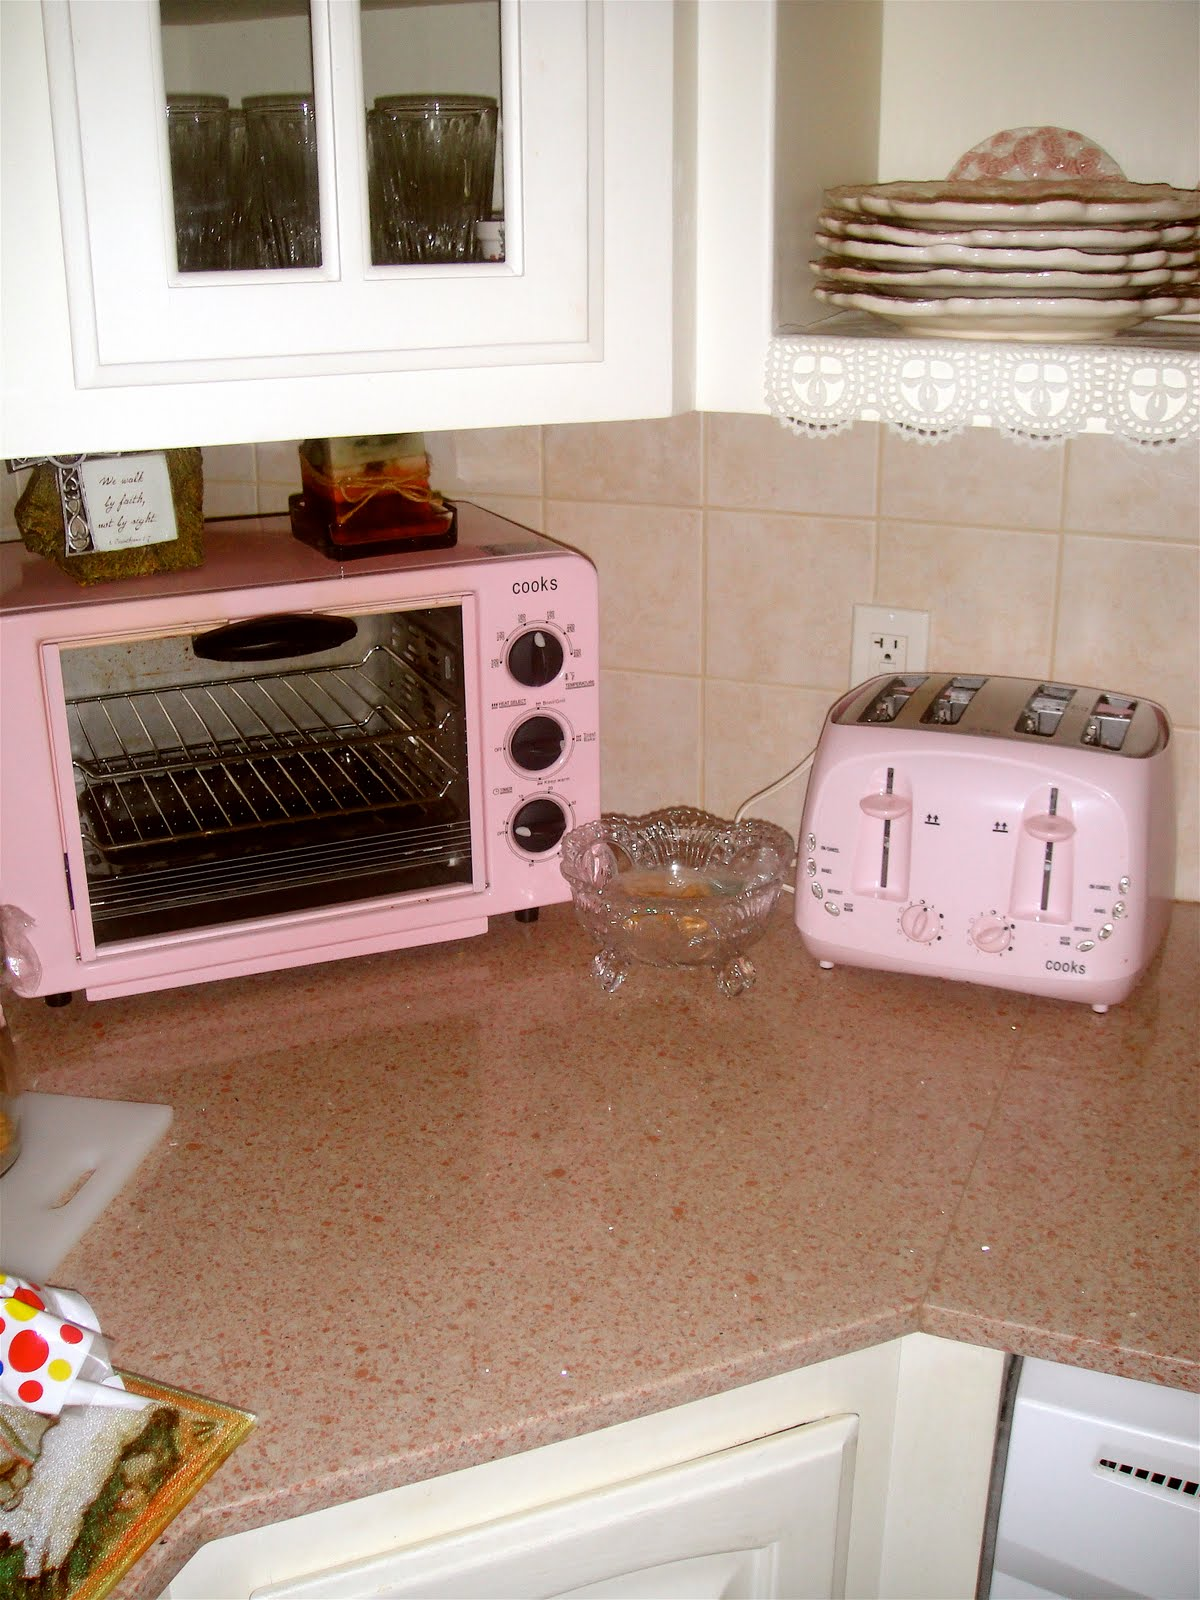 Baby Pink Kitchen Appliances Diy Outdoor Plans The Lady In Pearls Aug 23 2010